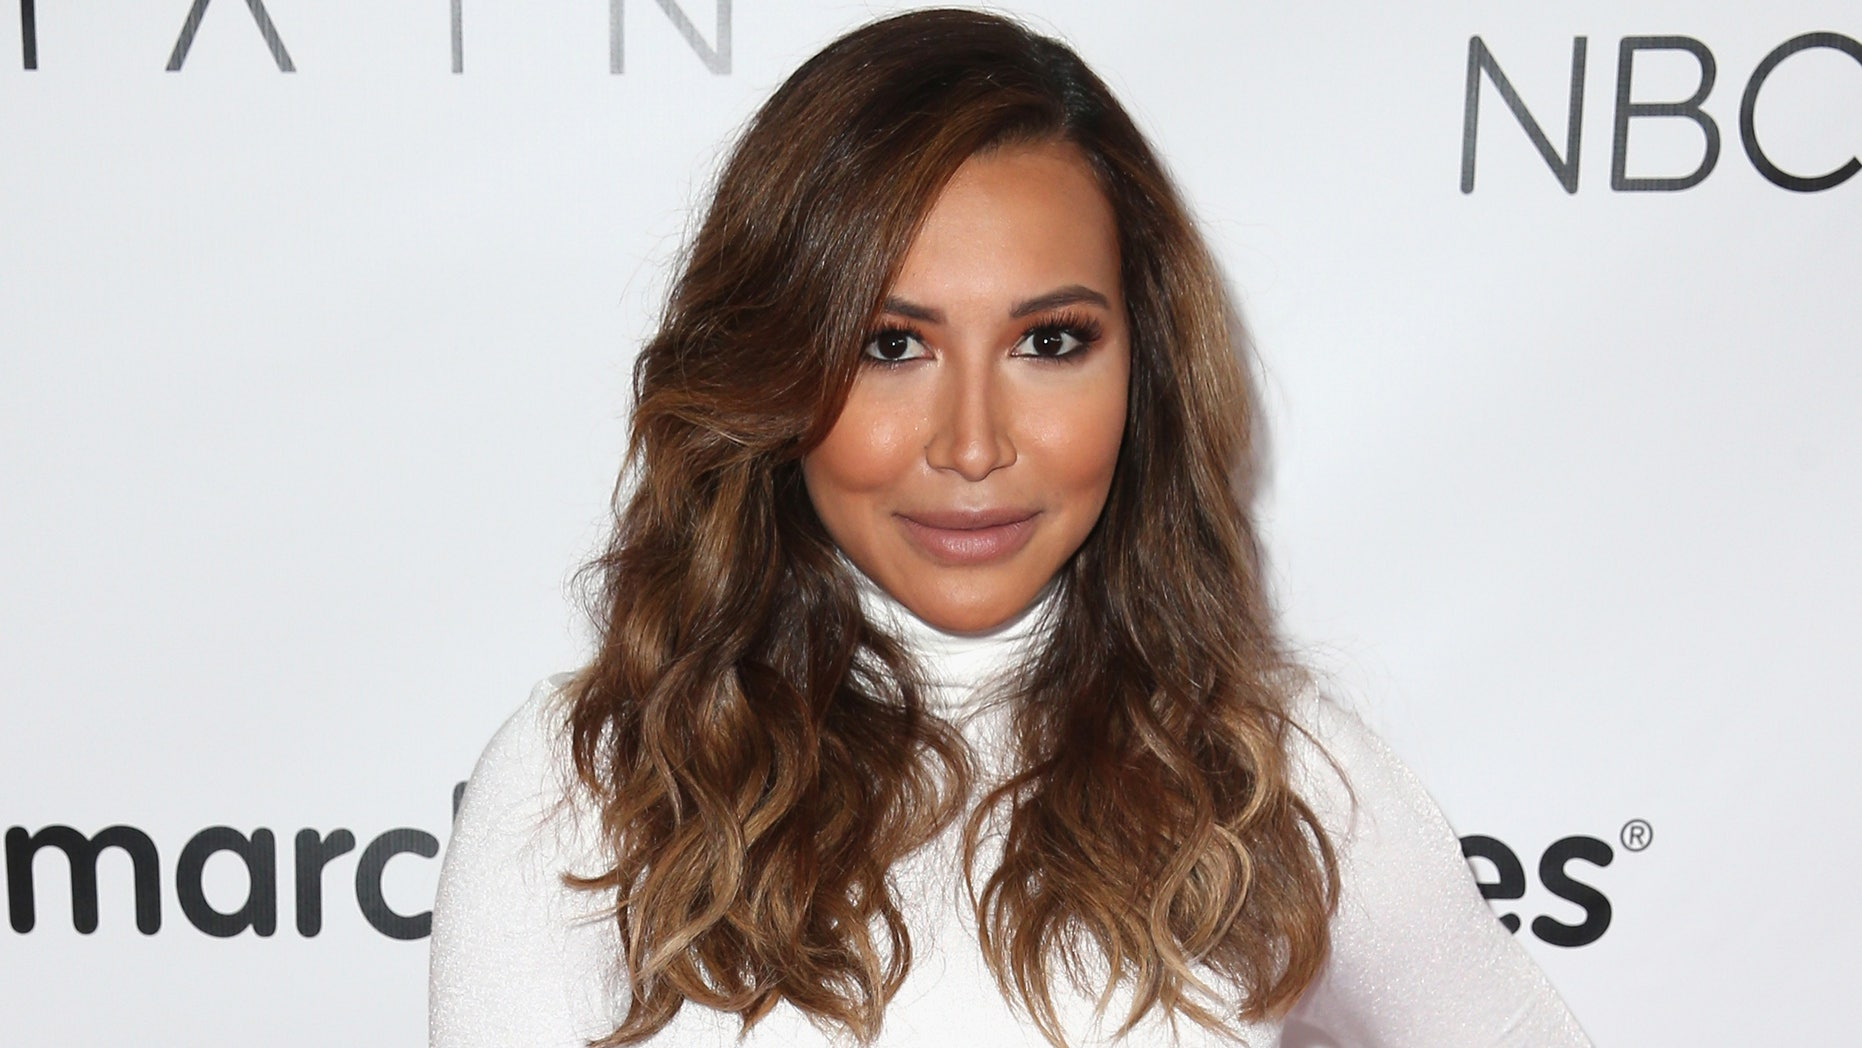 BEVERLY HILLS, CA - DECEMBER 04:  Actress Naya Rivera attends the March Of Dimes Celebration Of Babies Luncheon honoring Jessica Alba at the Beverly Wilshire Four Seasons Hotel on December 4, 2015 in Beverly Hills, California.  (Photo by Joe Scarnici/Getty Images for March Of Dimes)